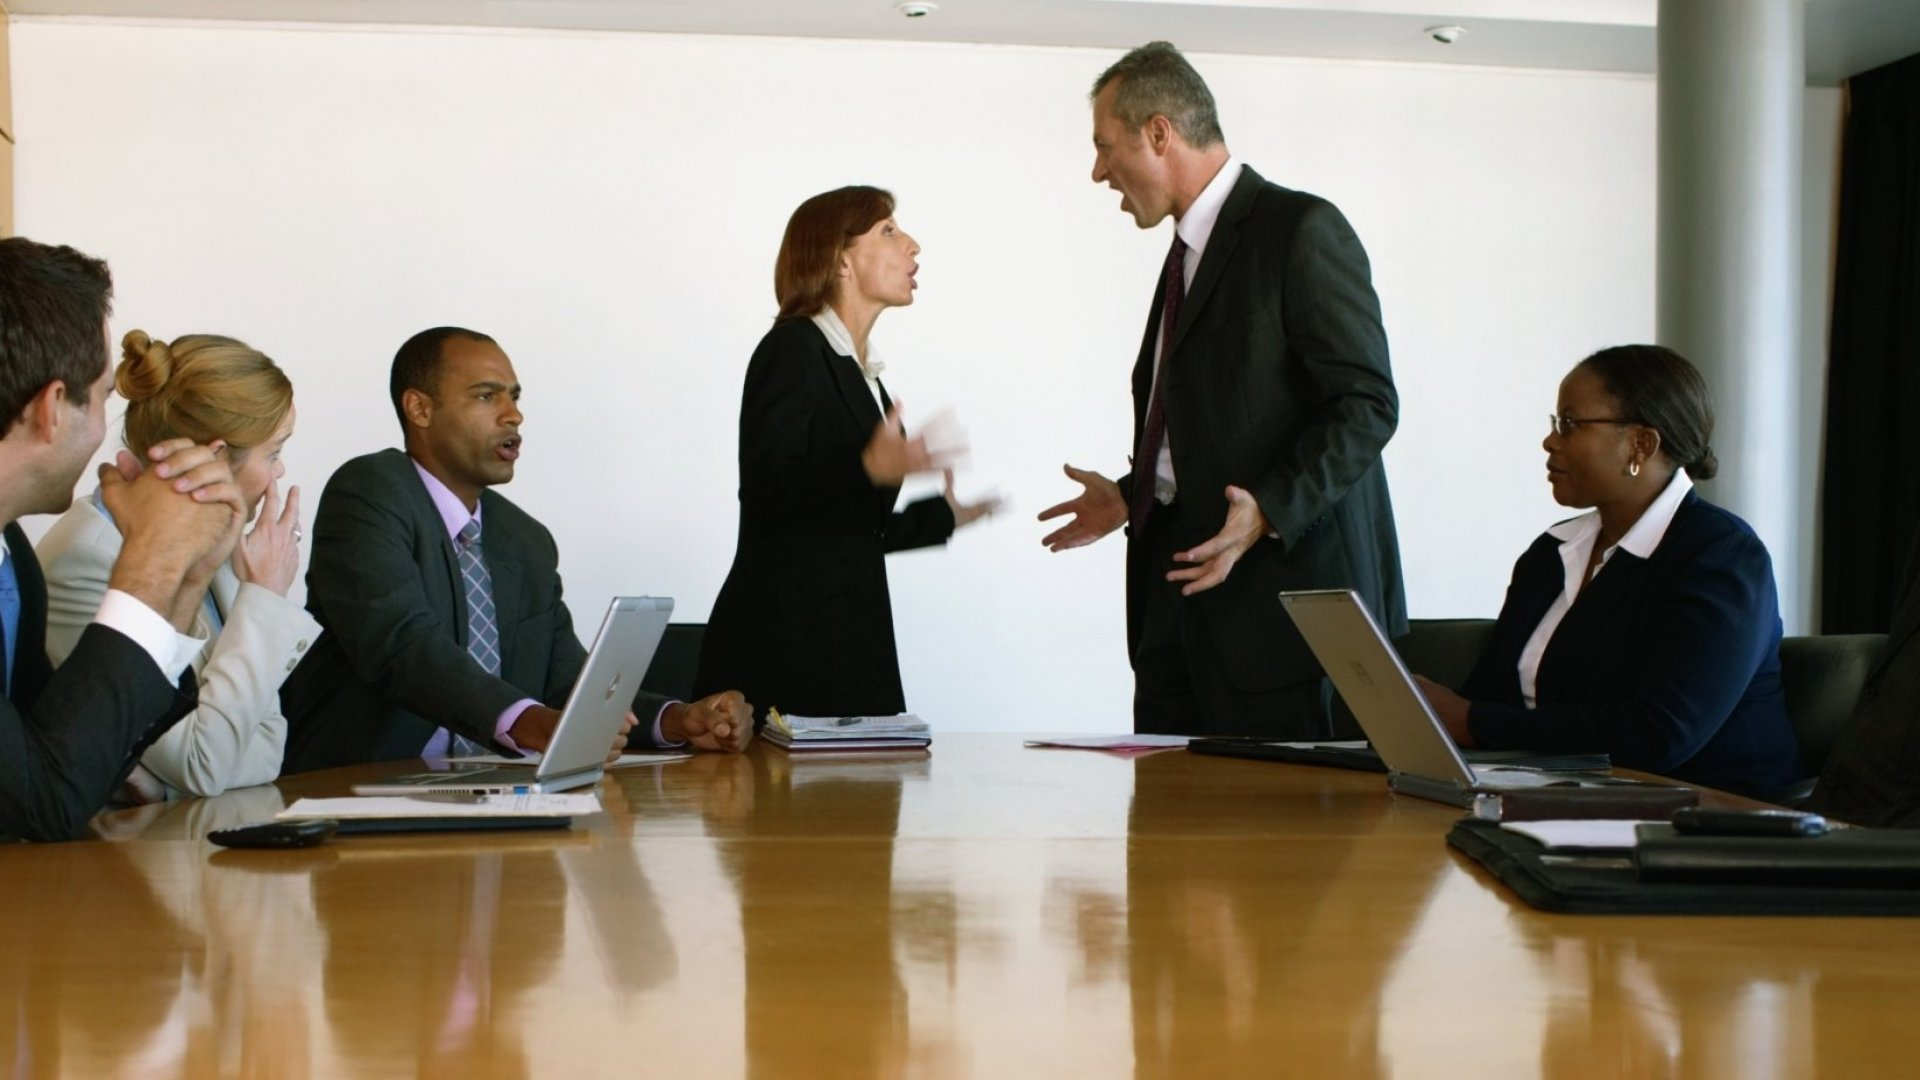 4 Ways to Avoid a Toxic Client Relationship